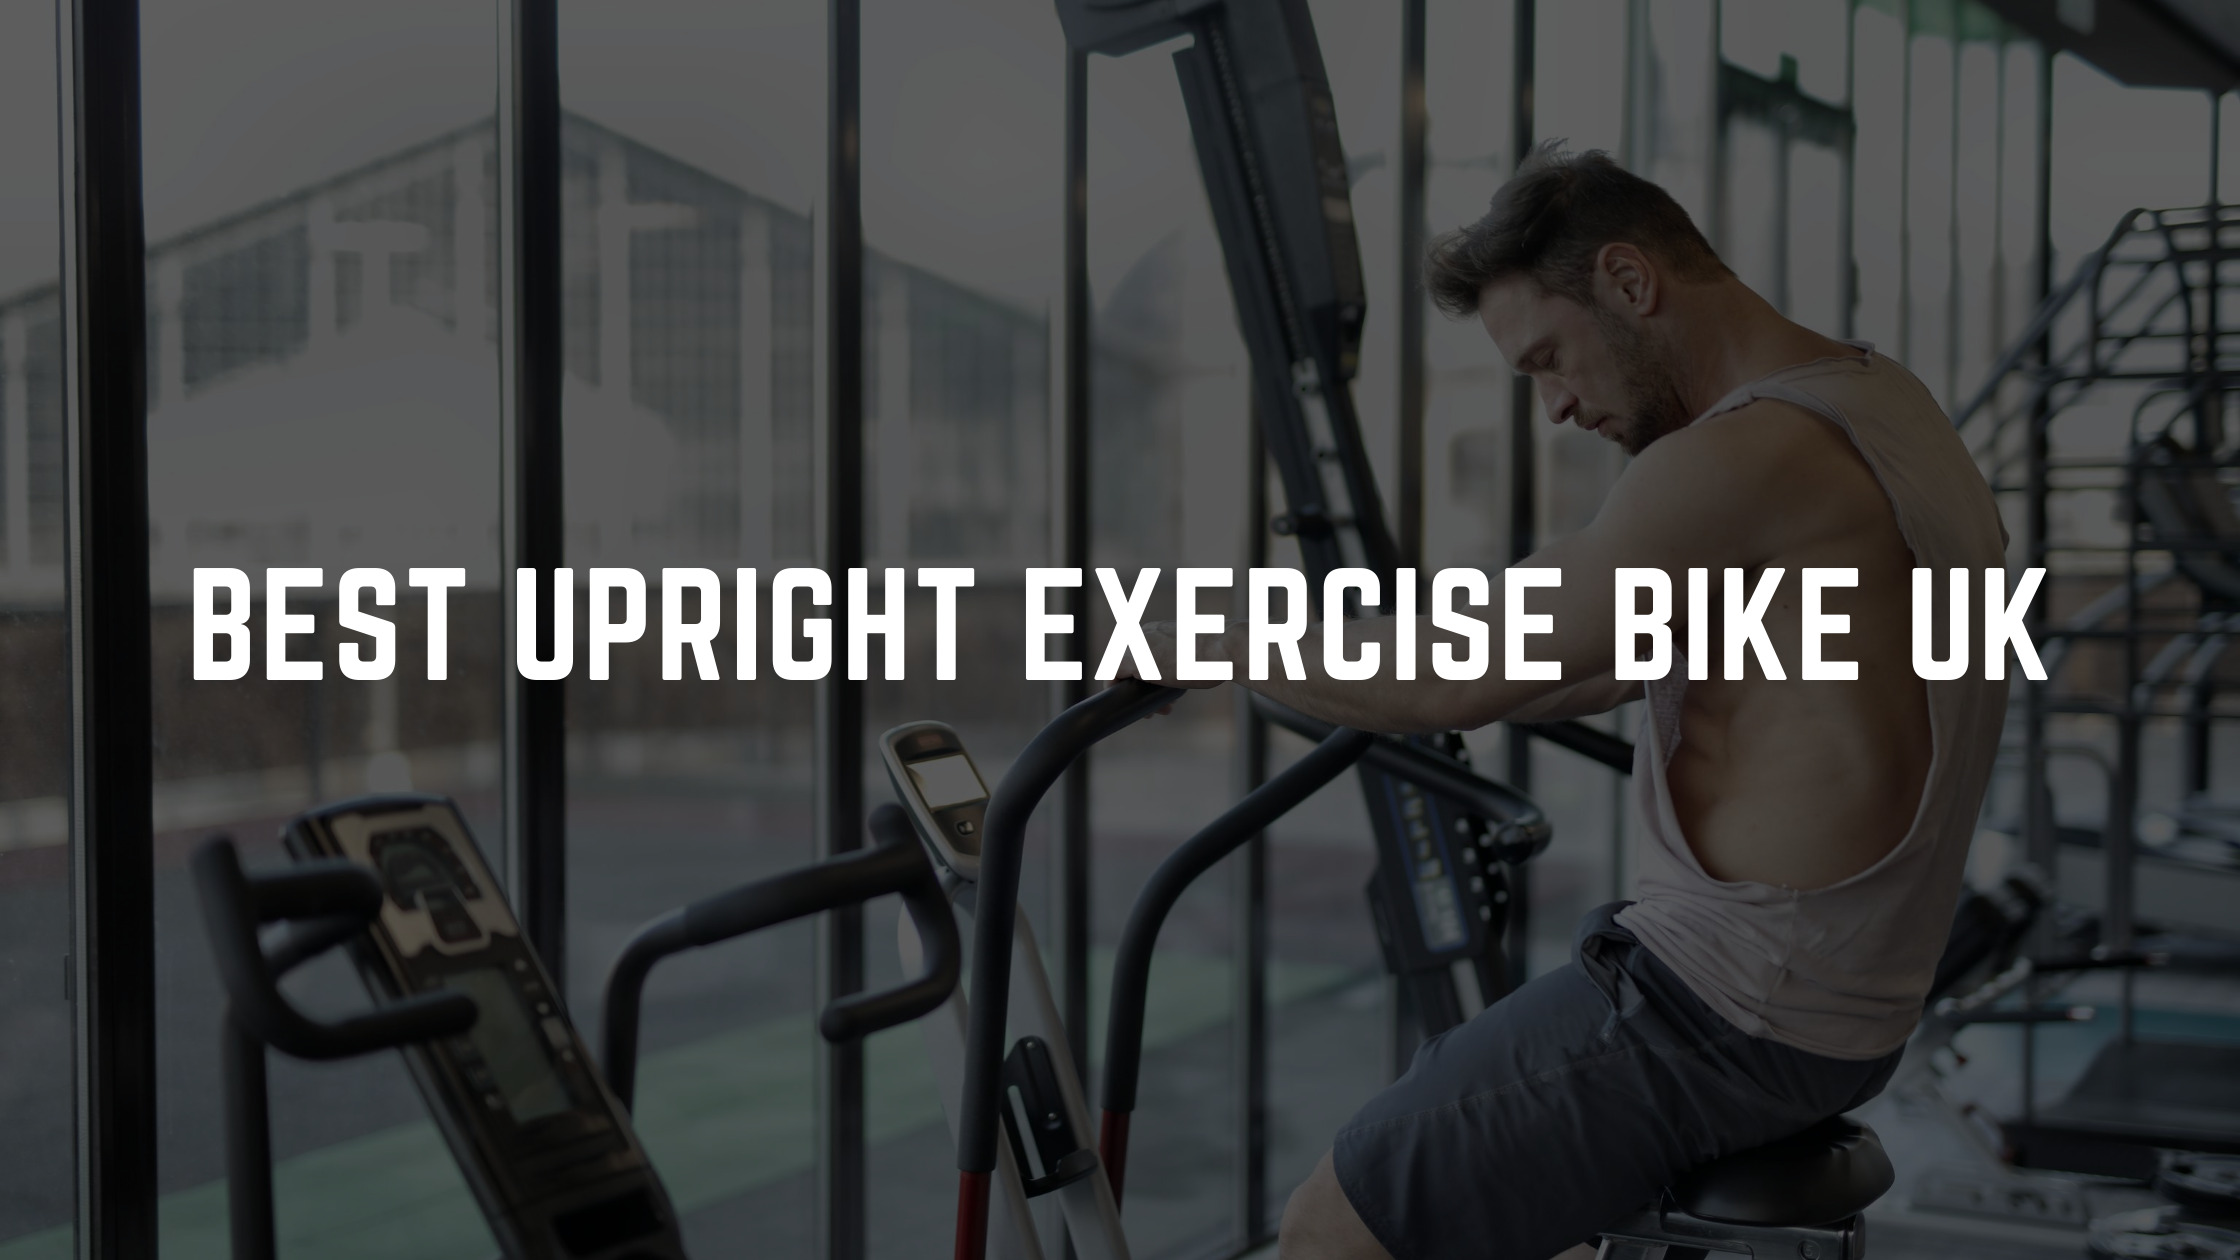 Best upright exercise bike uk